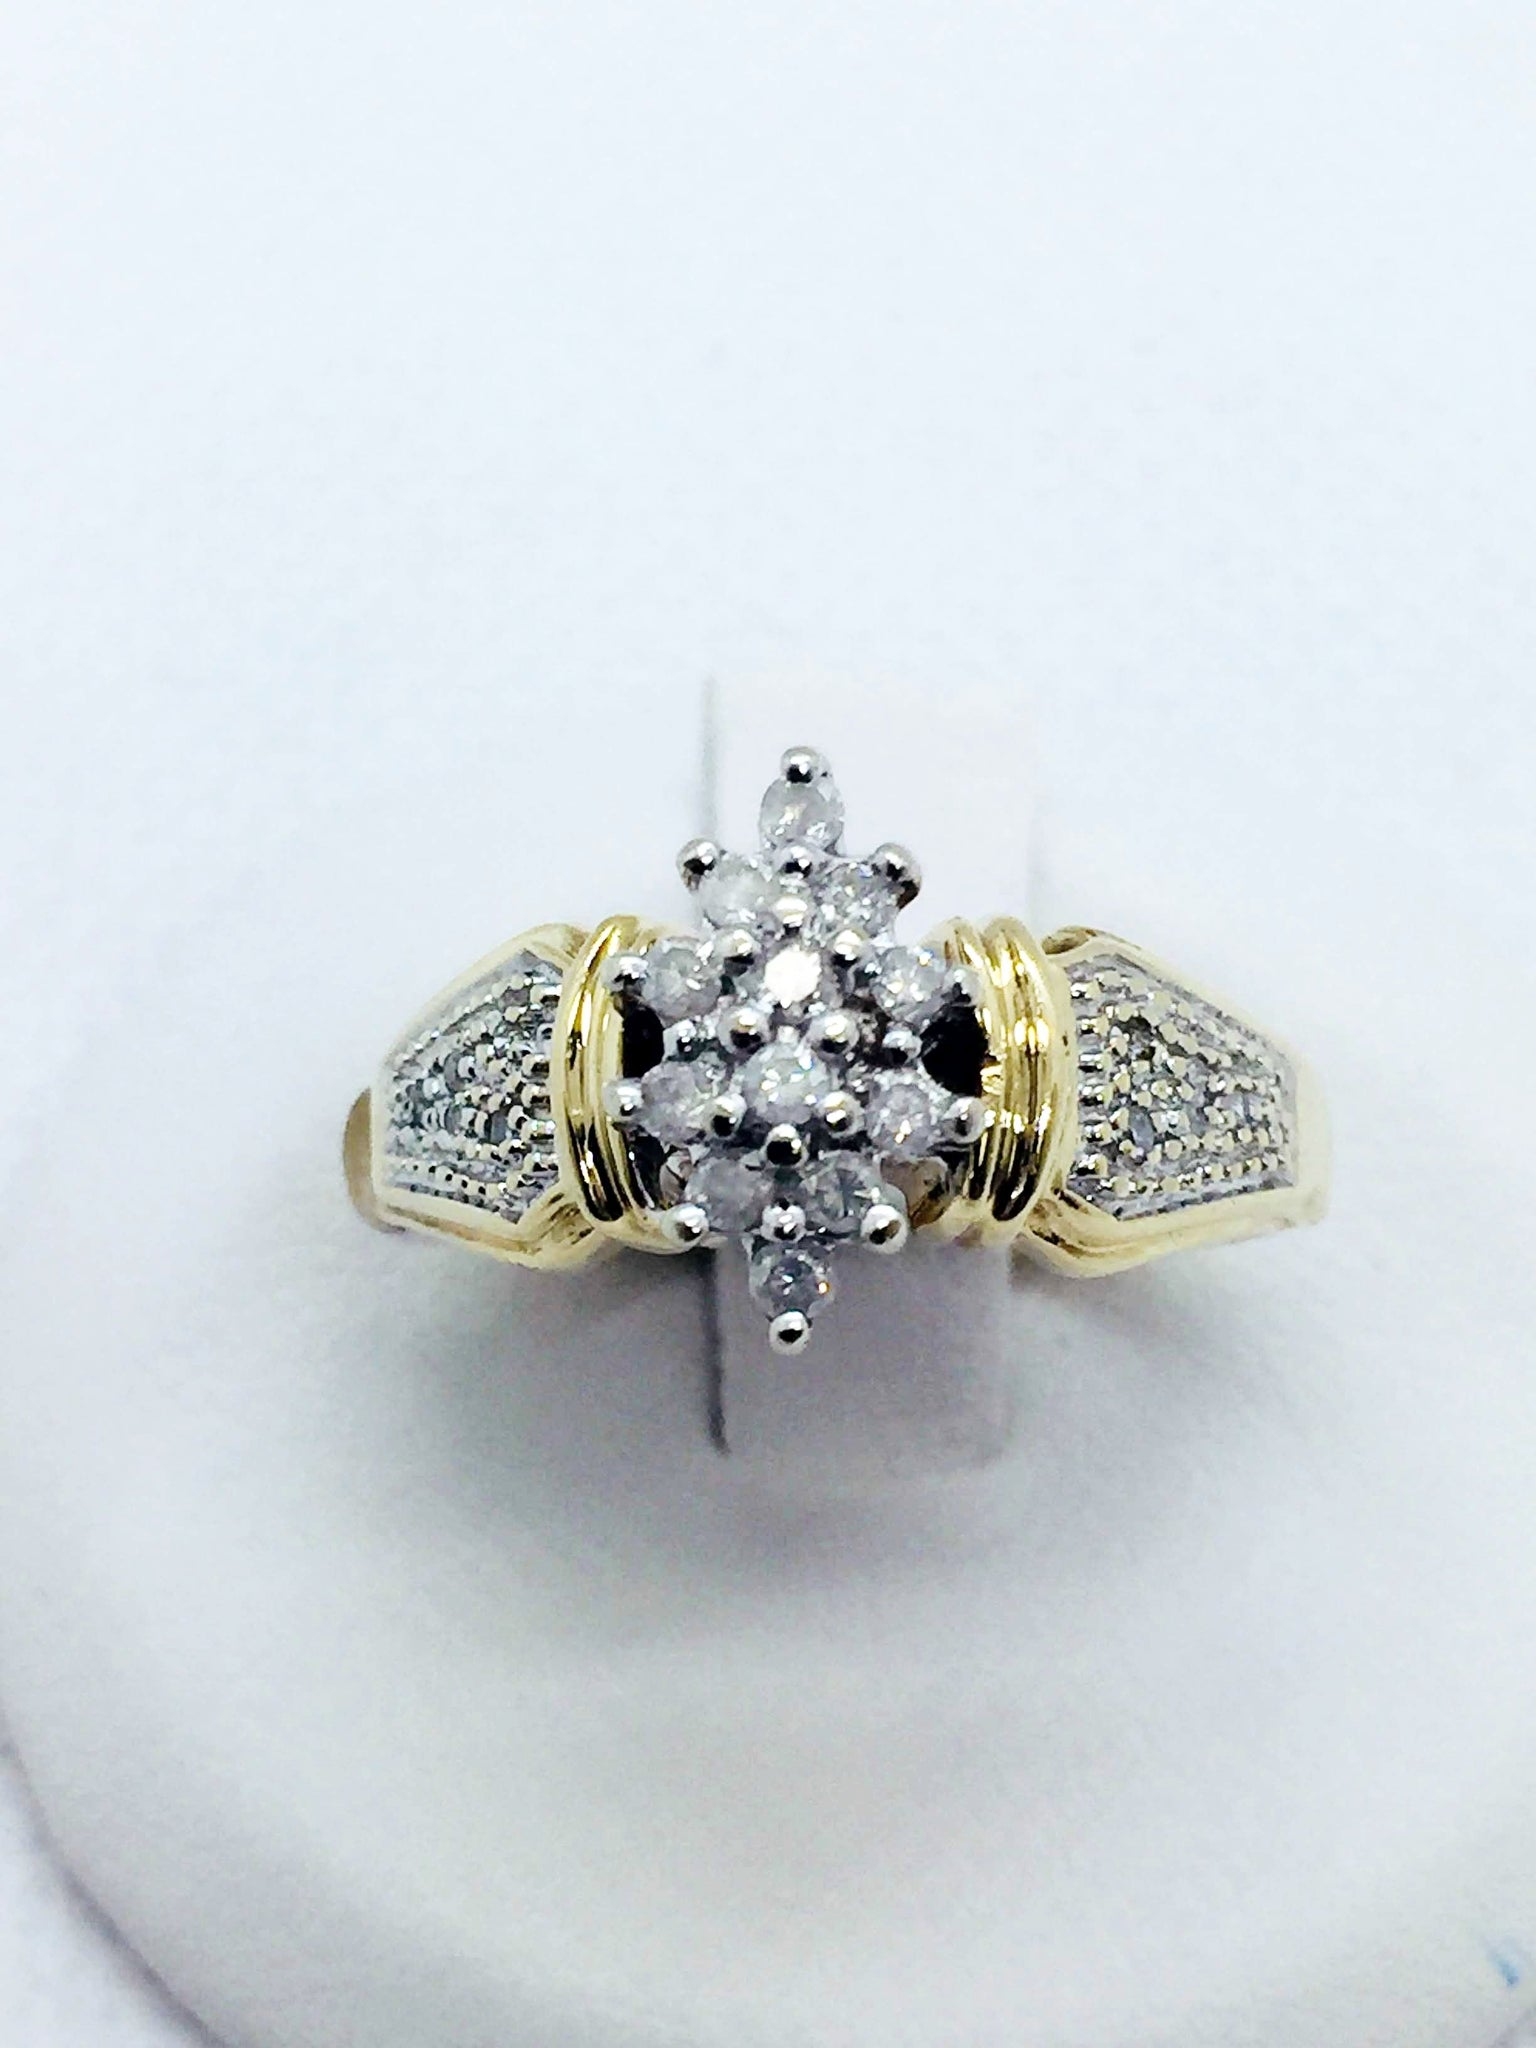 10k Solid Gold Diamond Cluster Ring